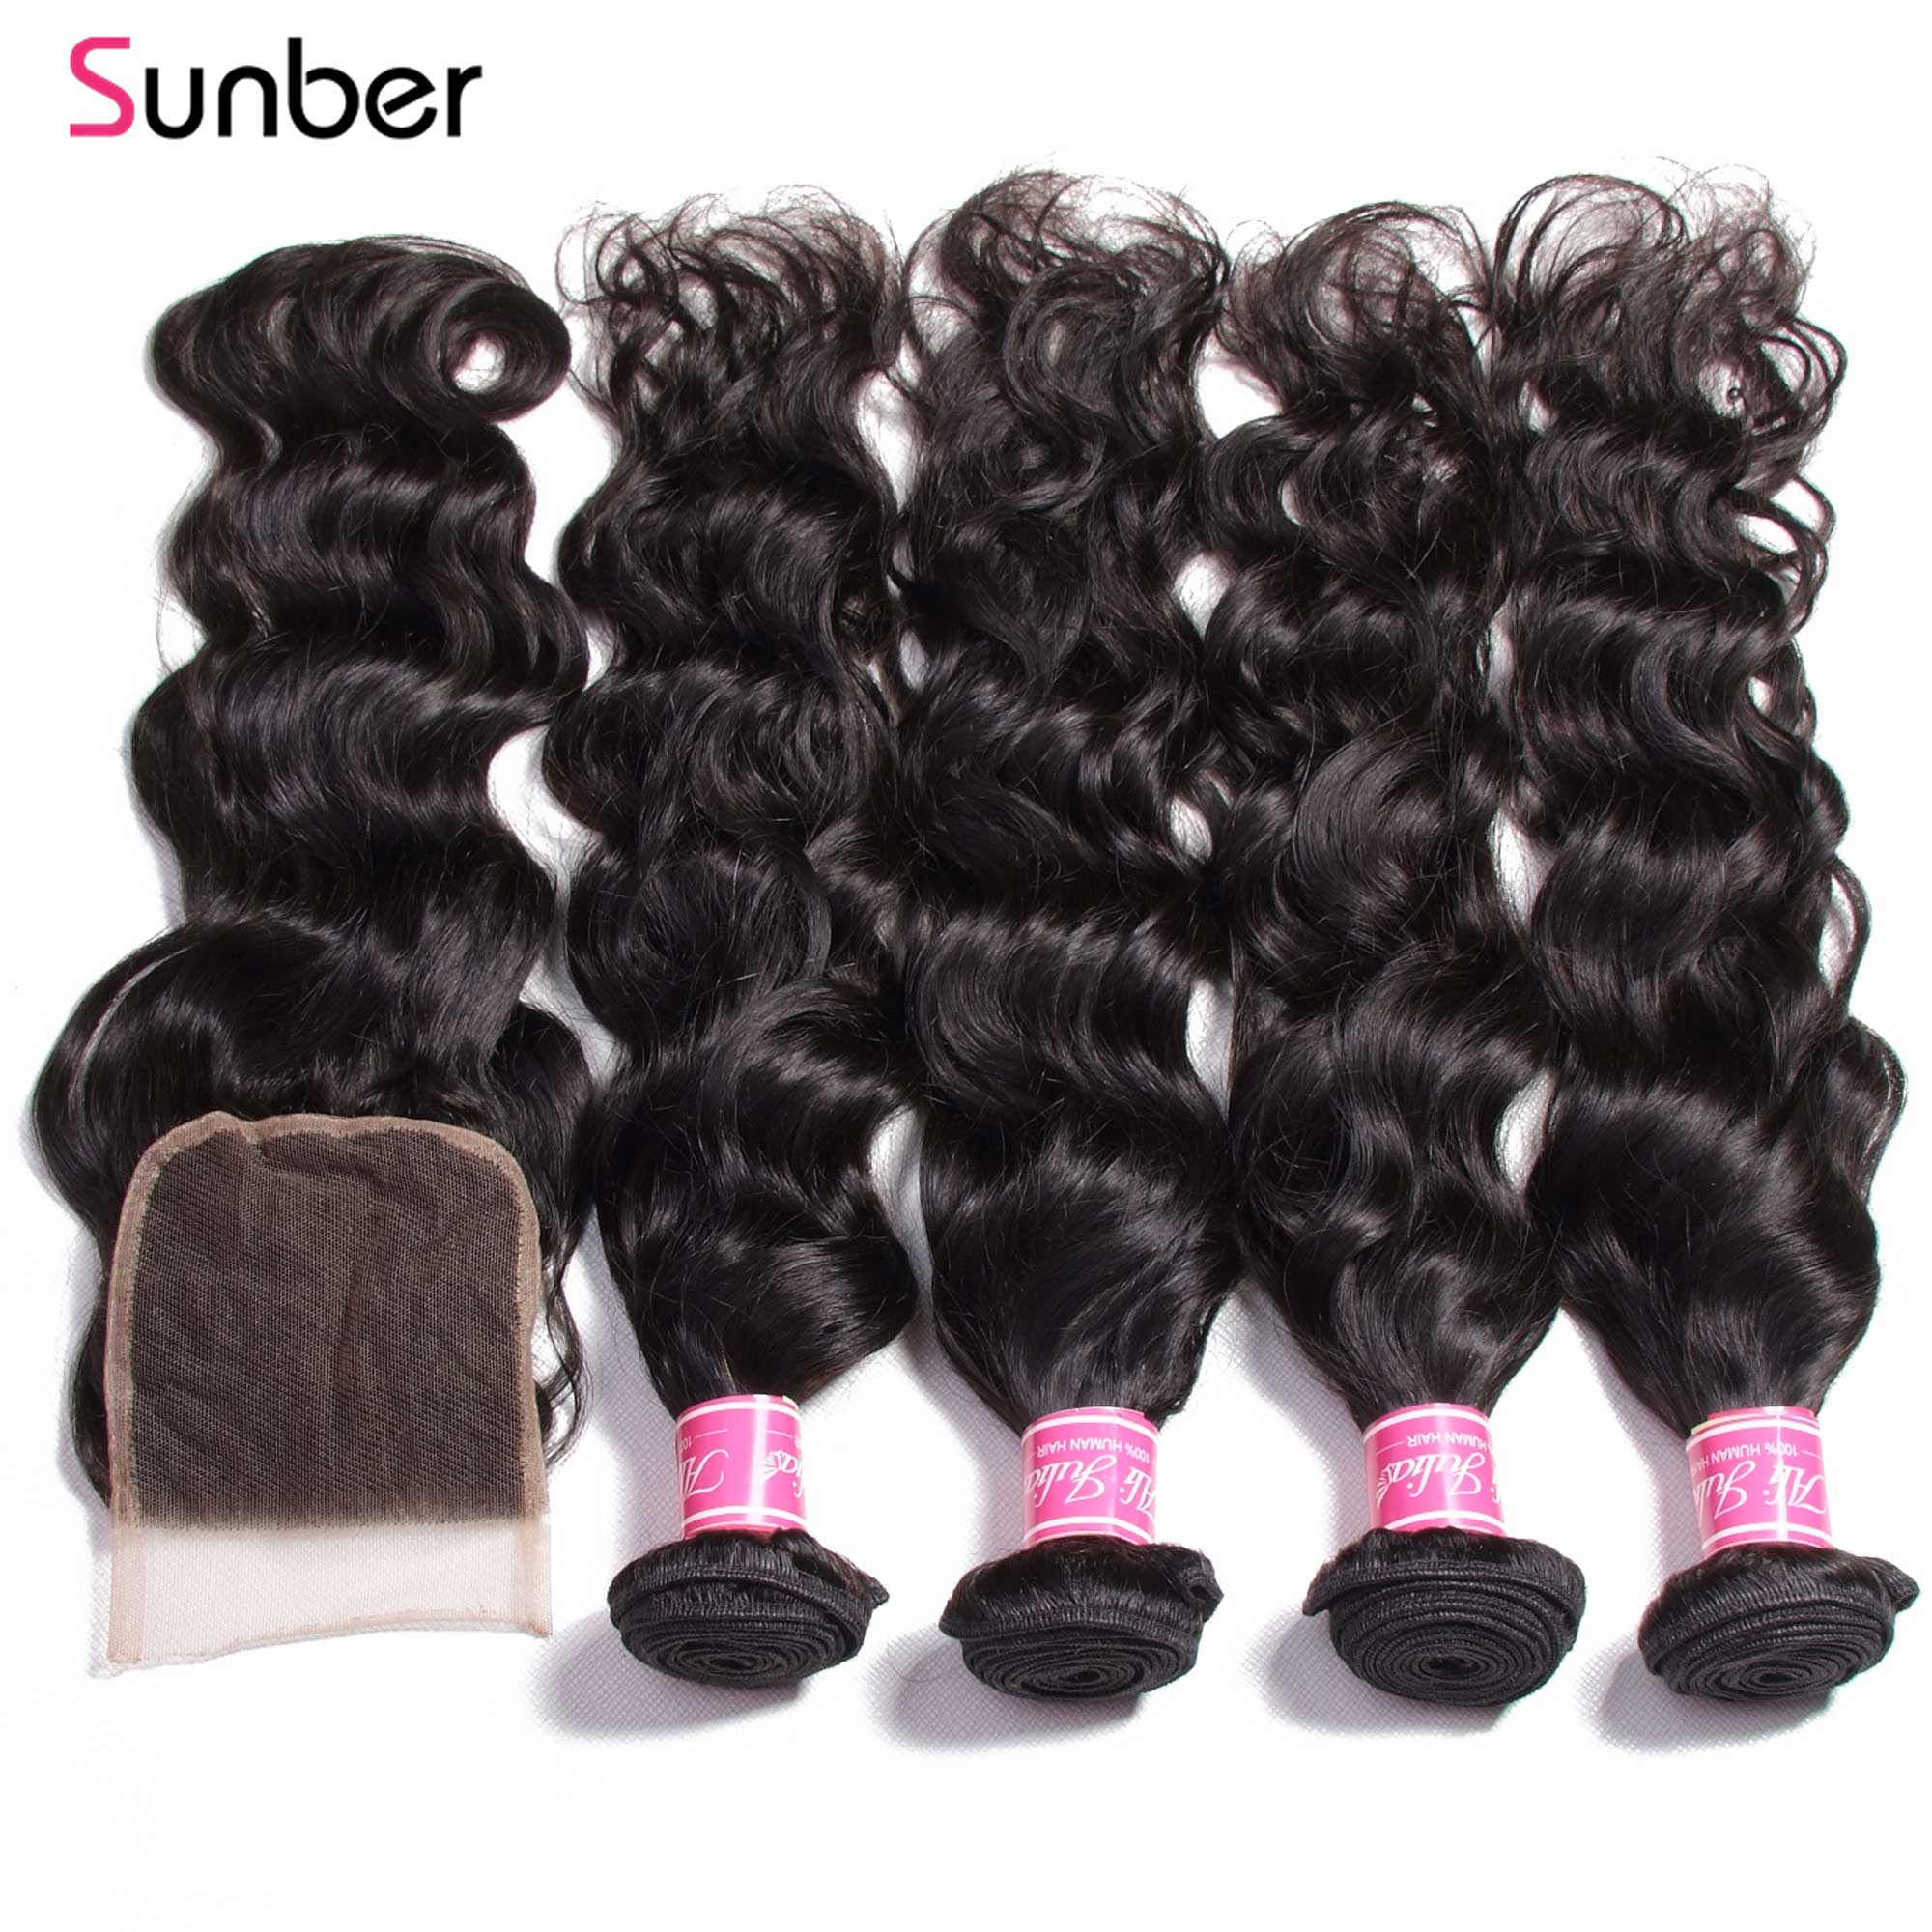 Sunber Natural Wave Peruvian Hair Bundles With Closure Remy Human Hair Weaves With Closure 3/4Pcs/Lot Lace Closures With Bundles